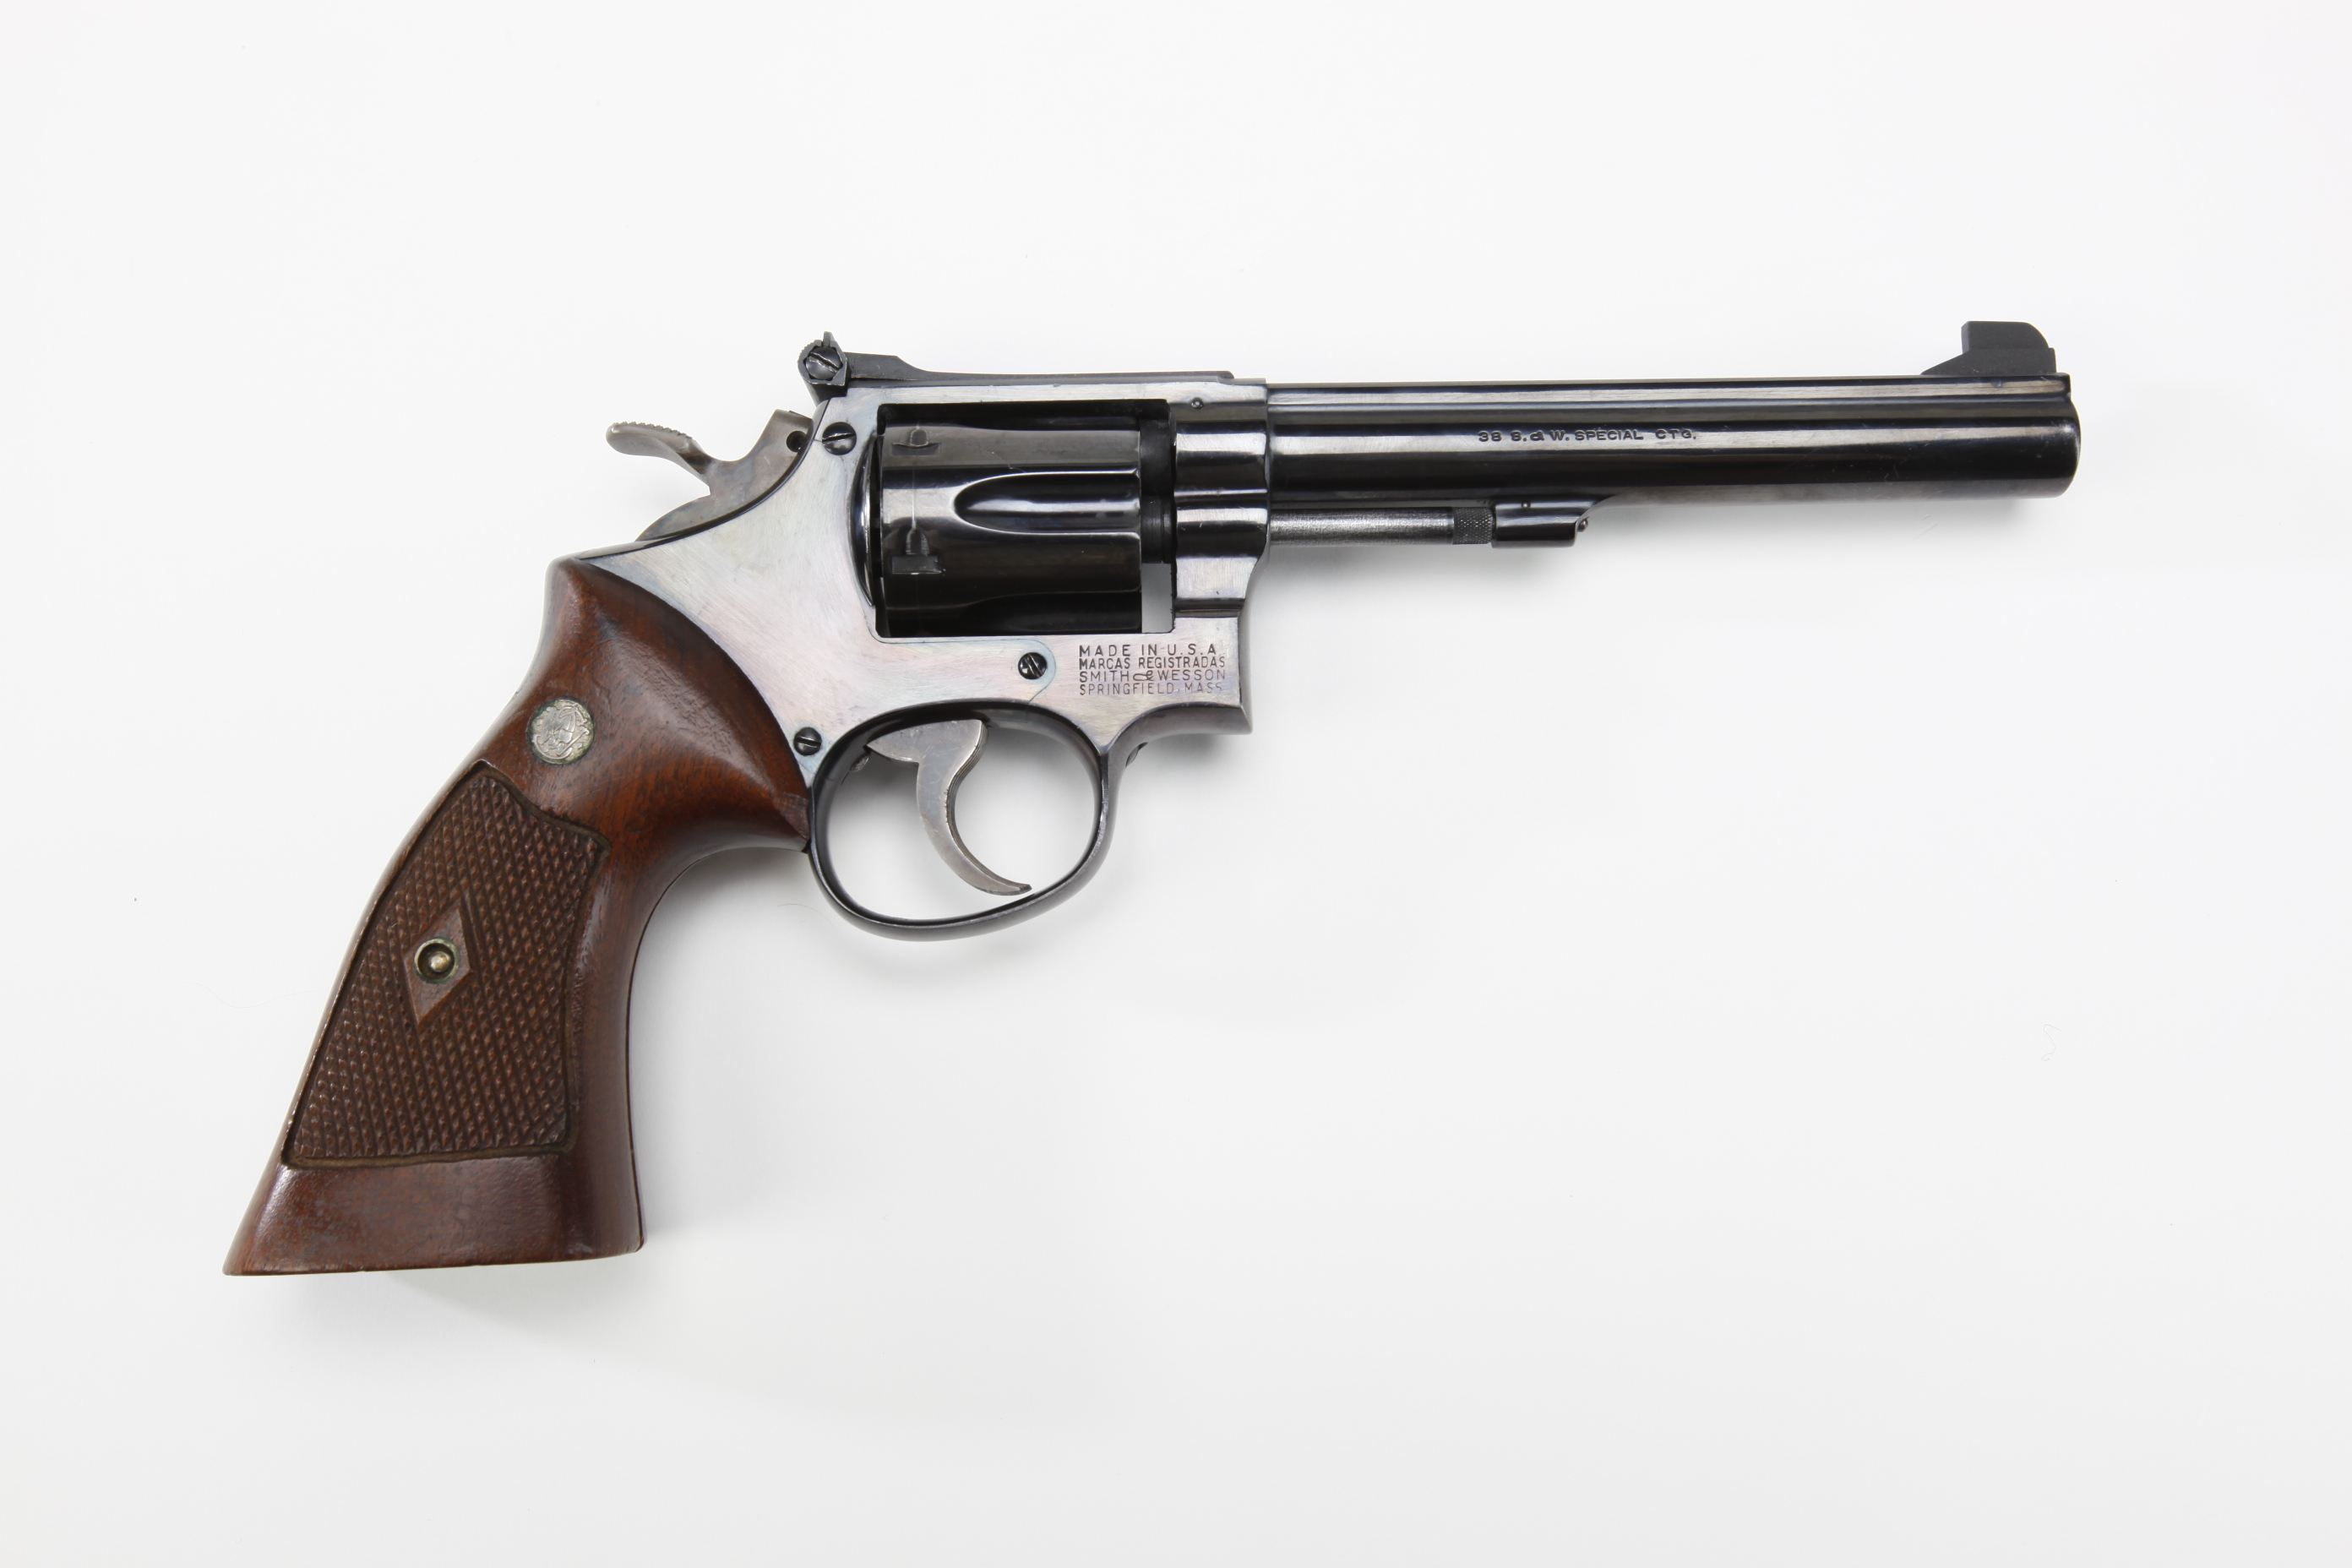 Smith & Wesson K 38 Masterpiece revolver